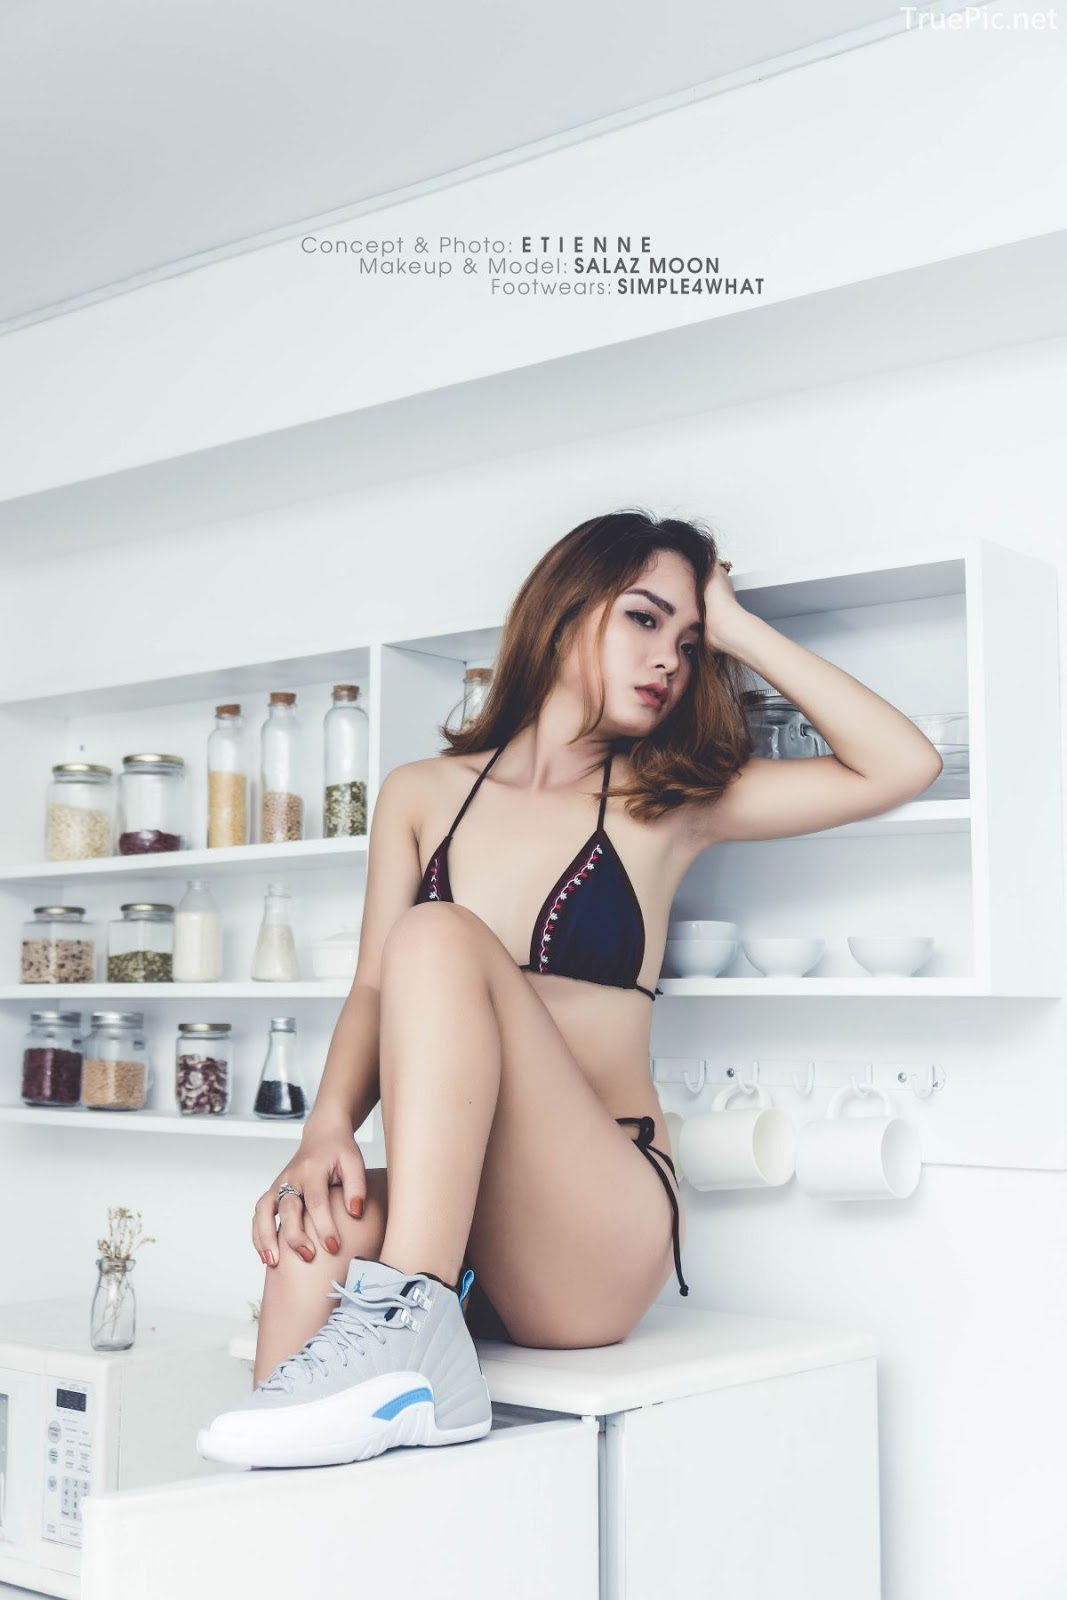 Super hot photos of Vietnamese beauties with lingerie and bikini - Photo by Le Blanc Studio - Part 1 - Picture 1